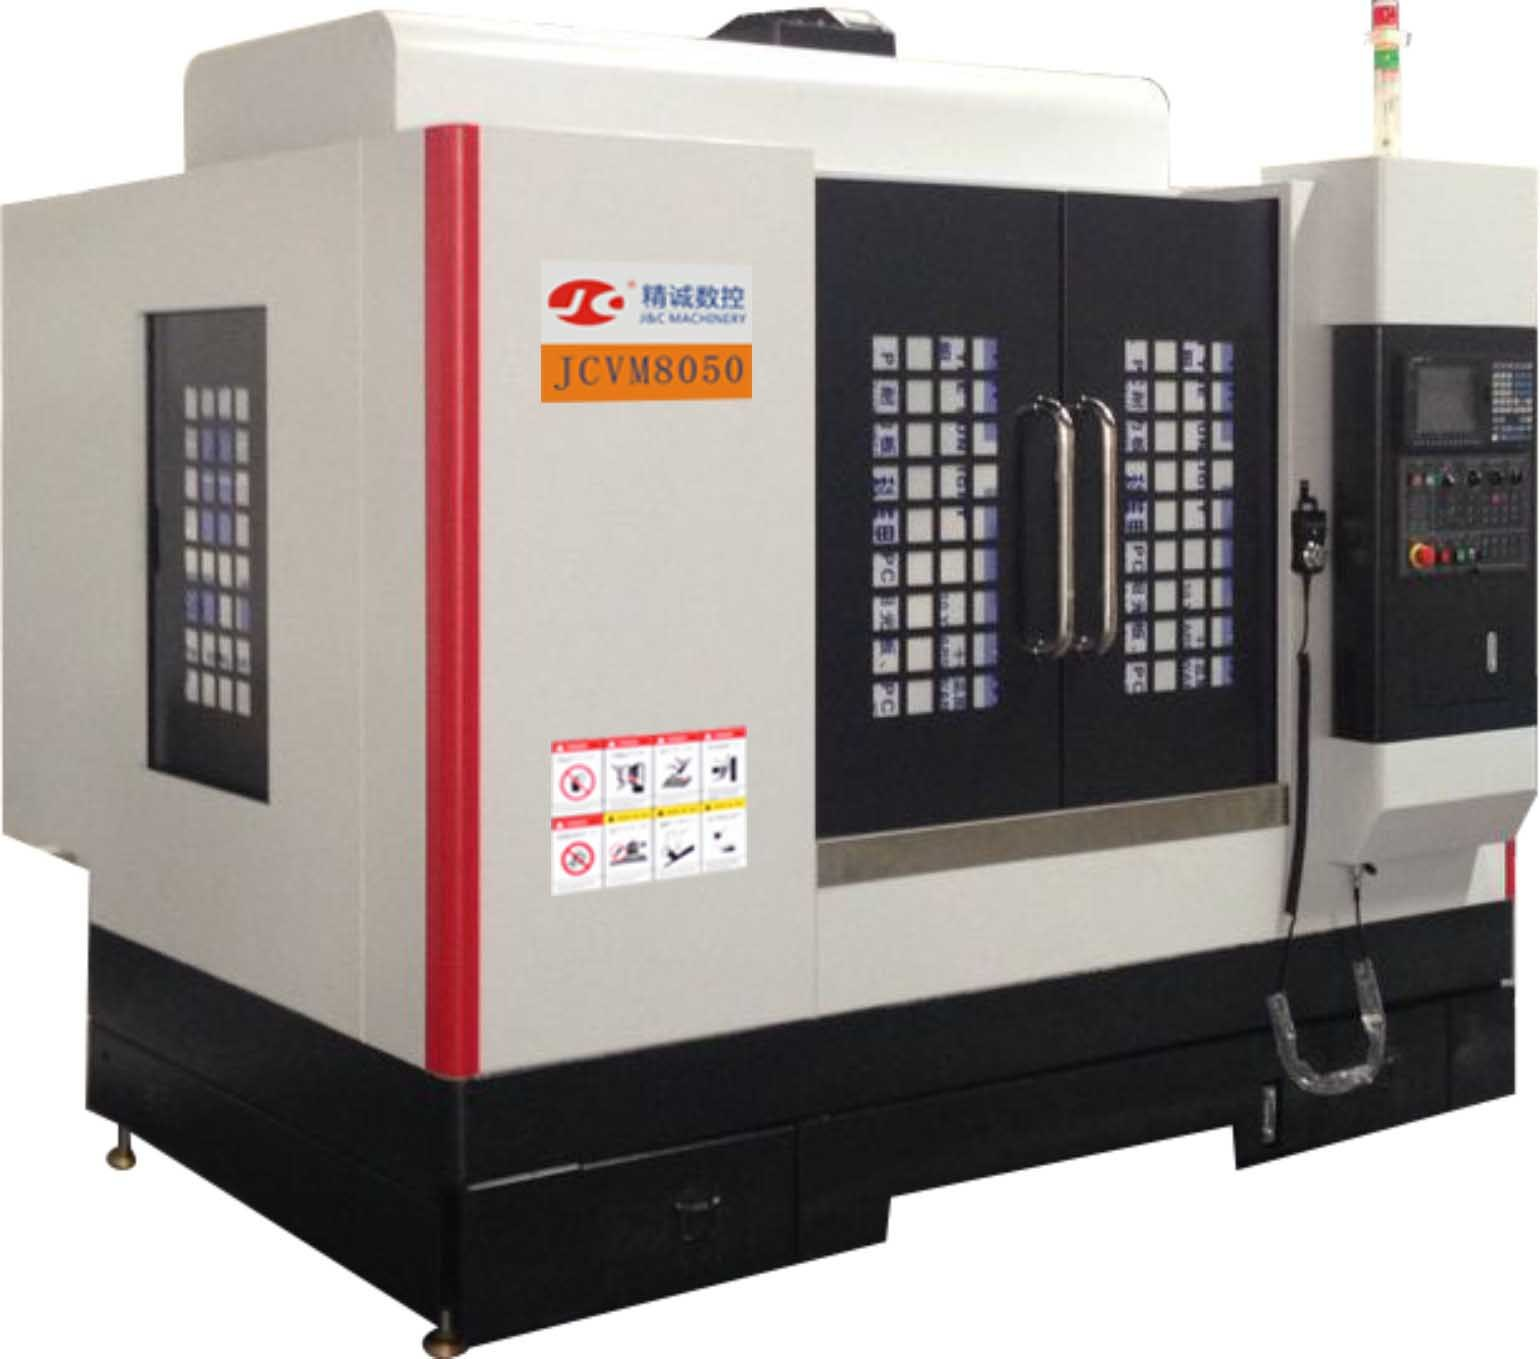 Jcvm8050 High Speed Vertical CNC Machining Center with Standard 24 Tools.